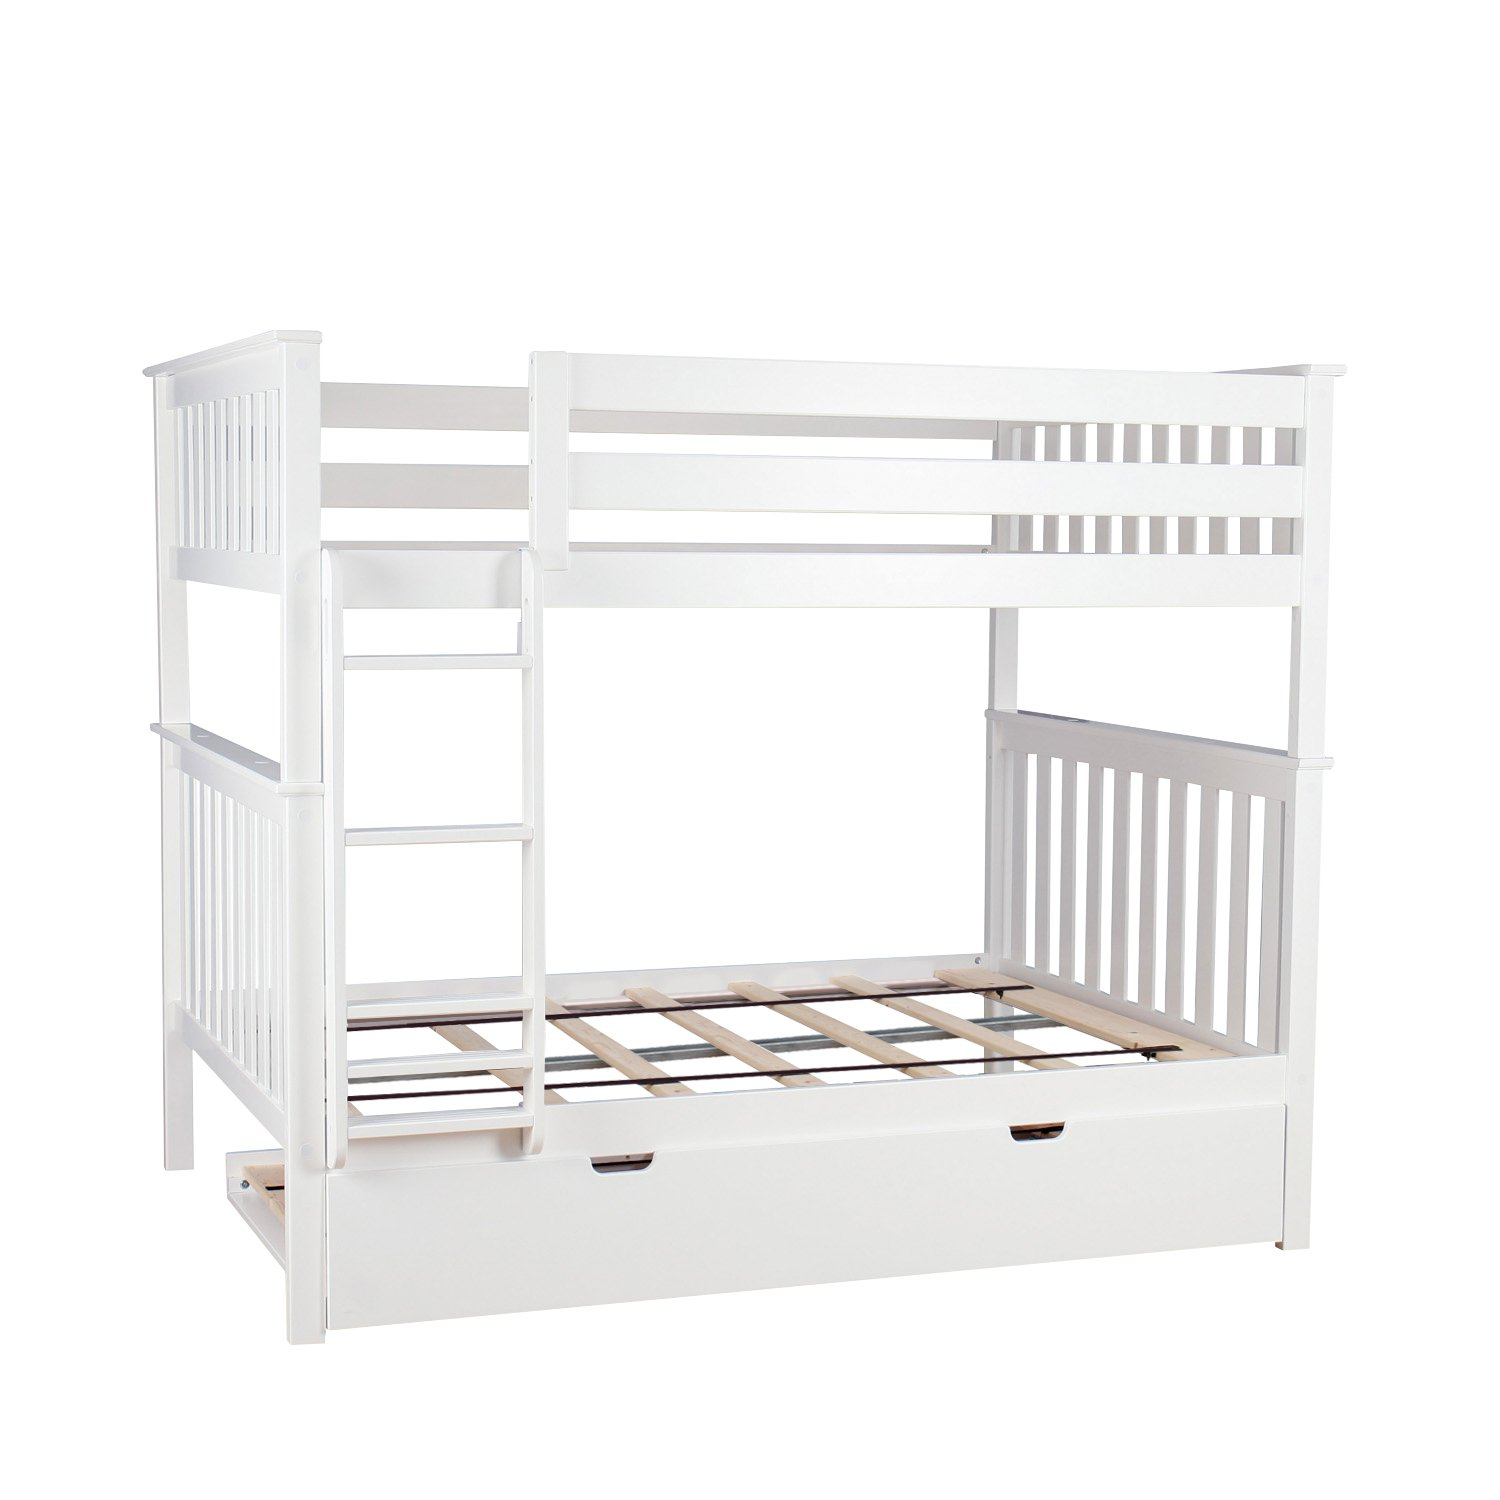 Max Lily Solid Wood Full over Full Bunk Bed with Trundle Bed, White